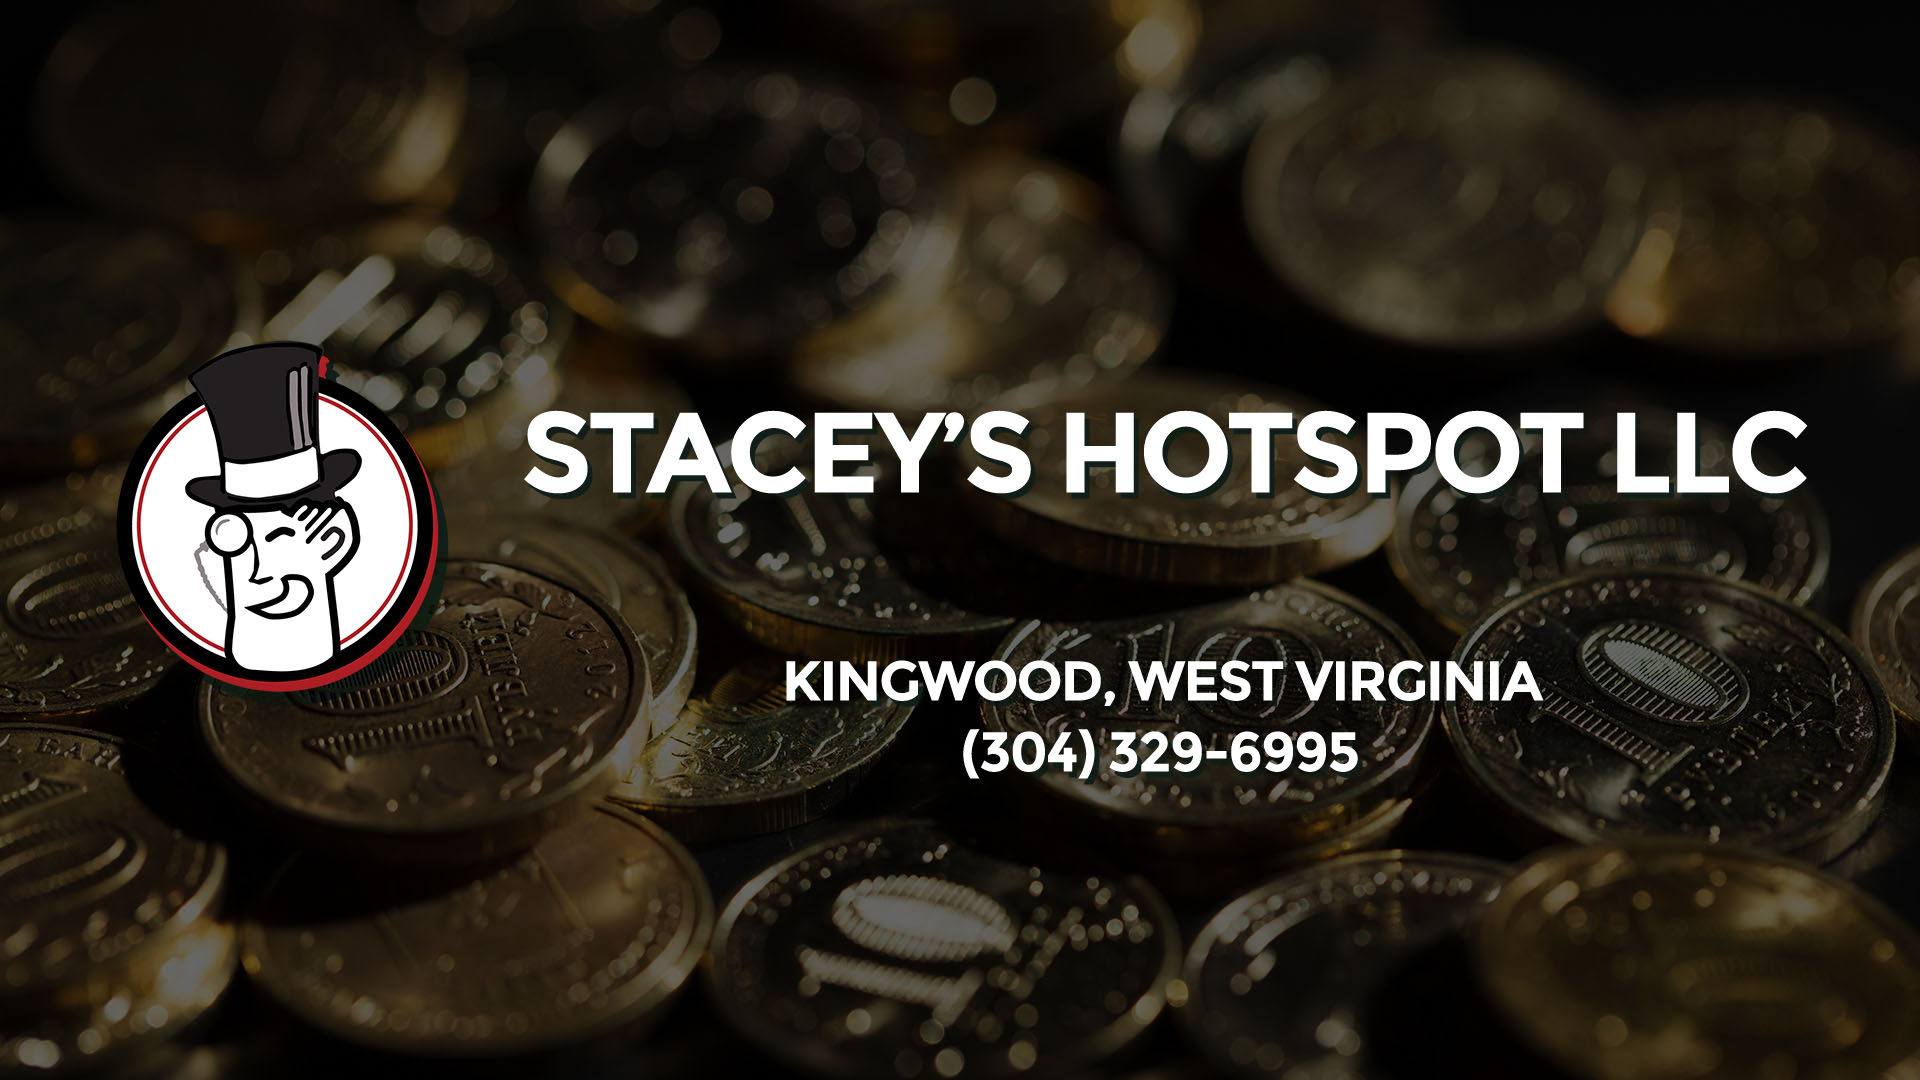 STACEY'S HOTSPOT LLC KINGWOOD WV